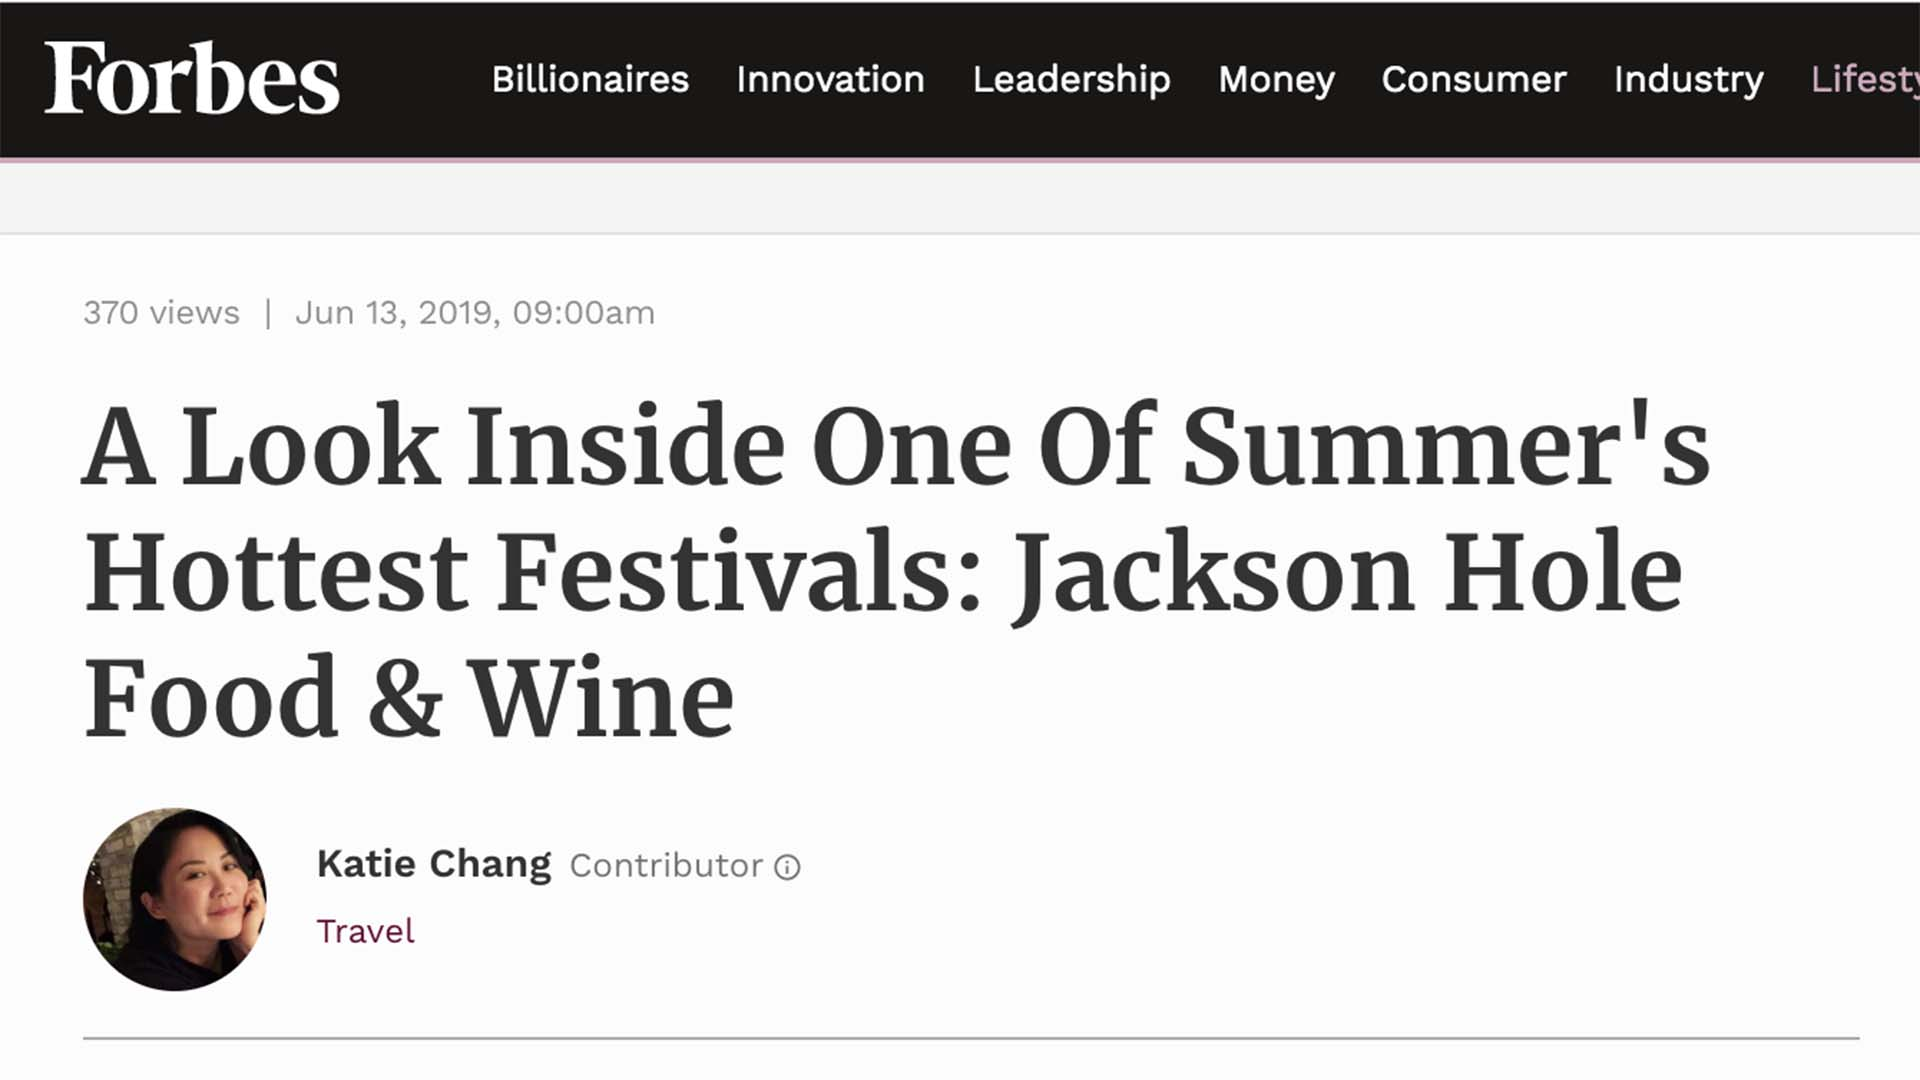 Forbes-Jackson-Hole-Food-Wine-Festival